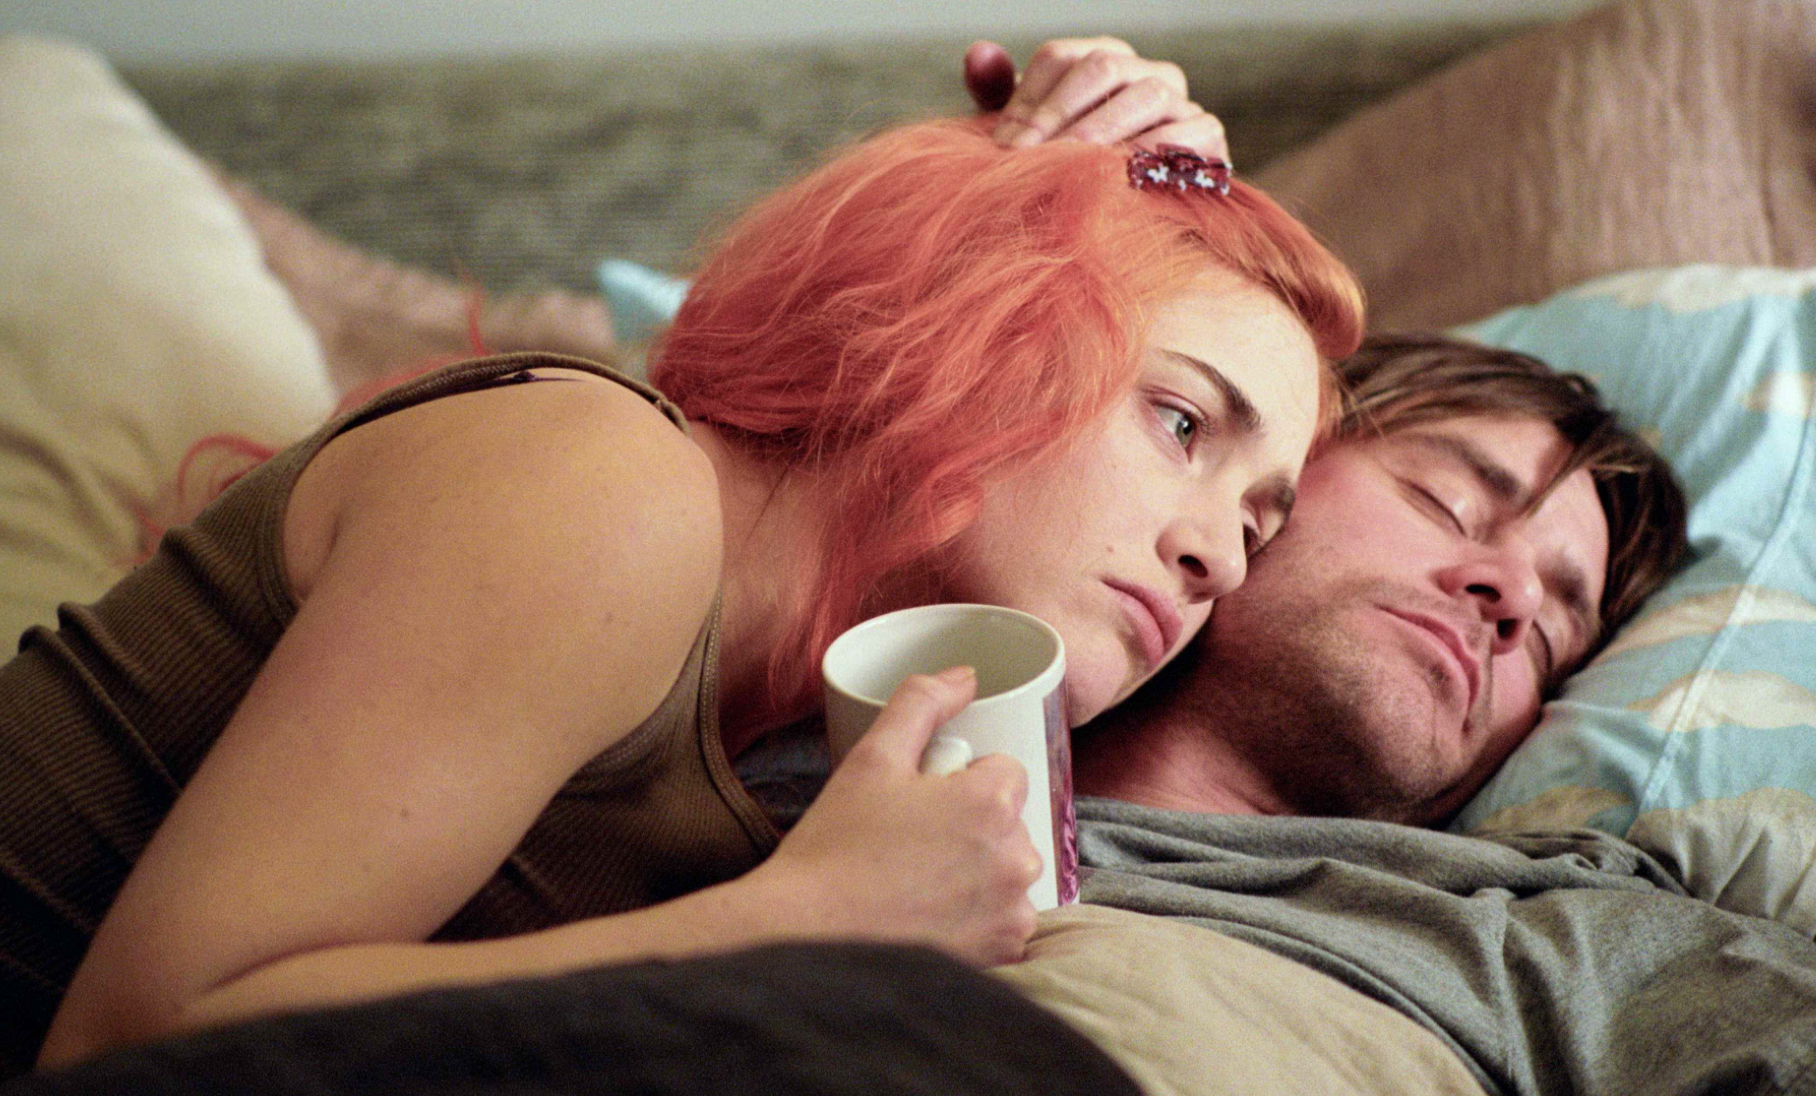 Eternal sunshine of the spotless mind, movies/tv